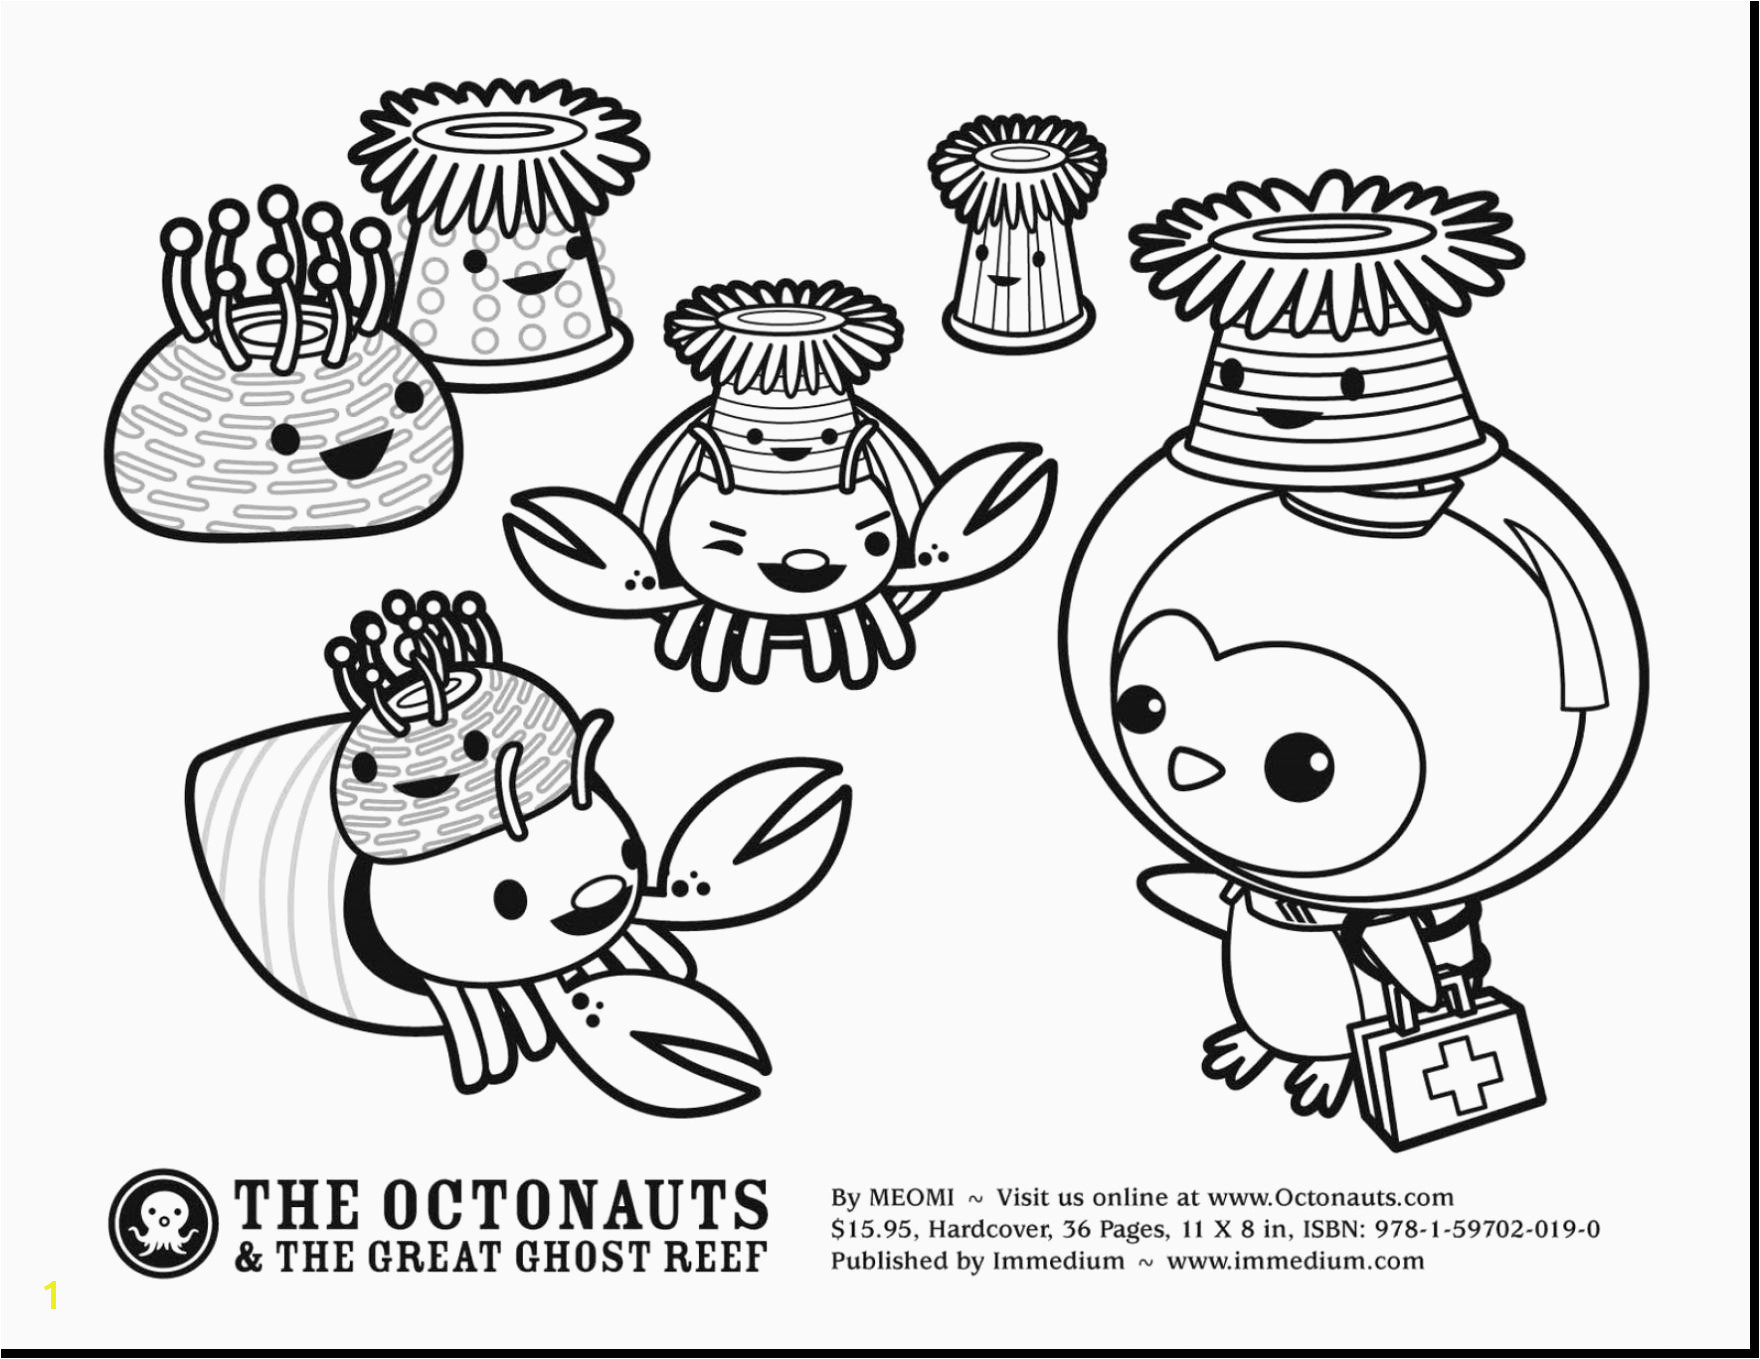 Octonauts Coloring Pages to Print Vampire Squid Coloring Page Image Cool Idea Octonauts Coloring Pages